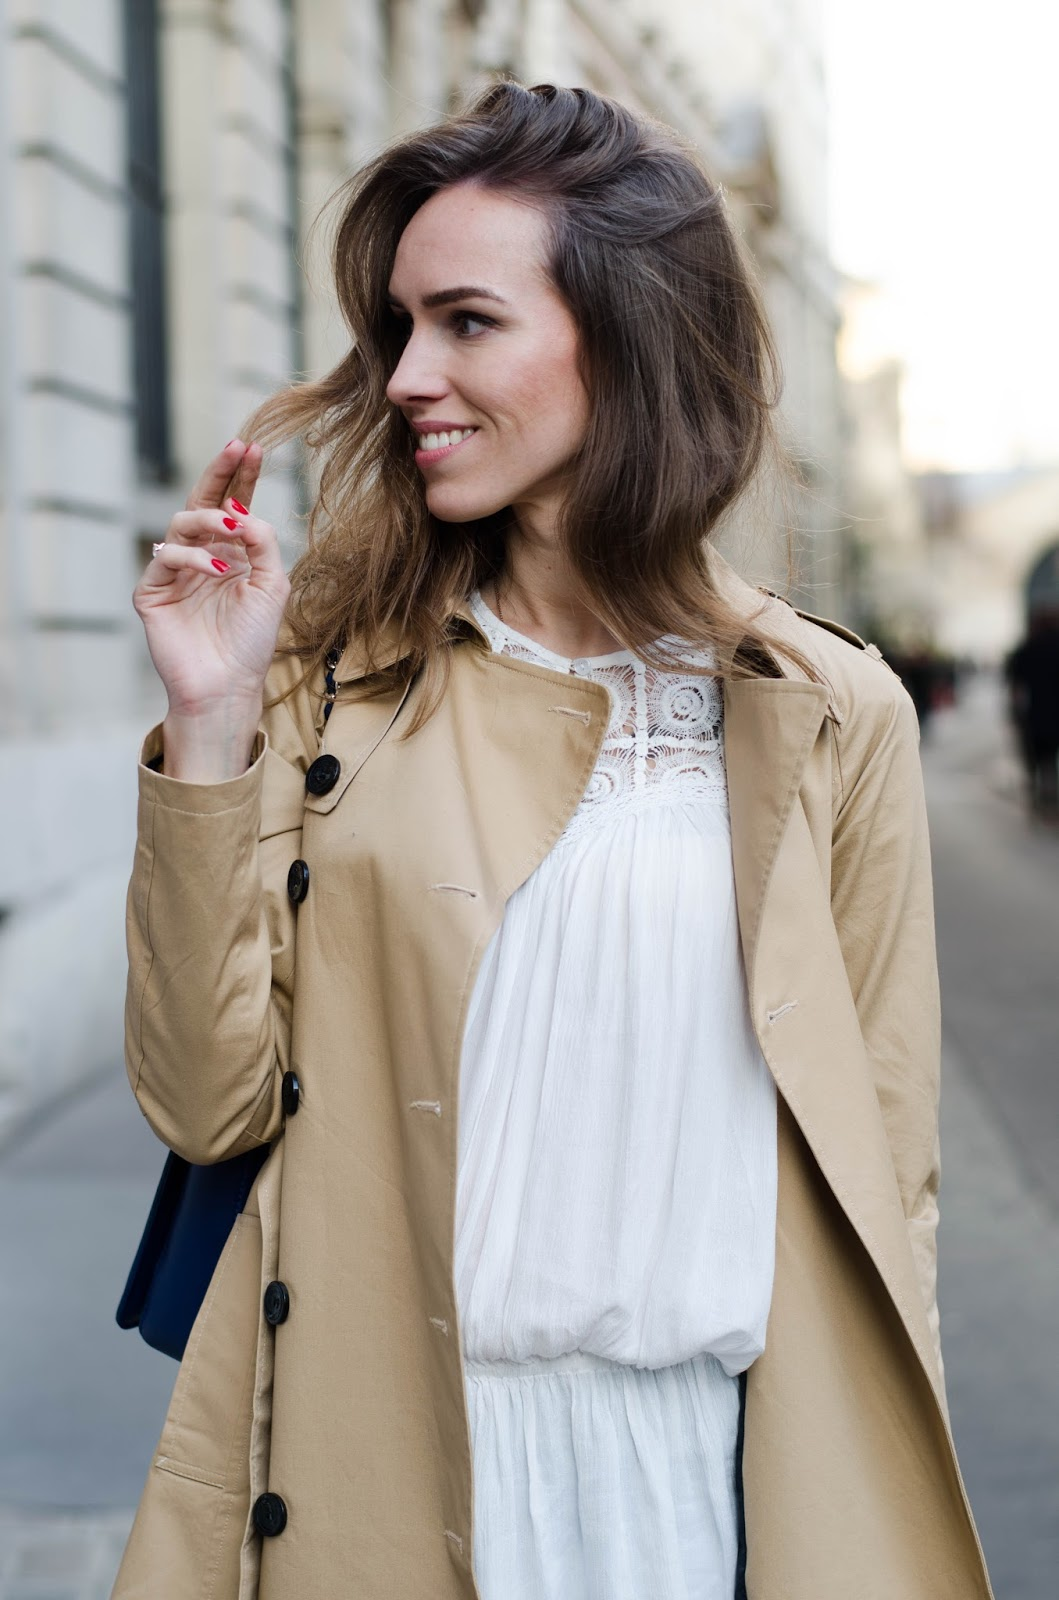 kristjaana mere beige trench coat white top